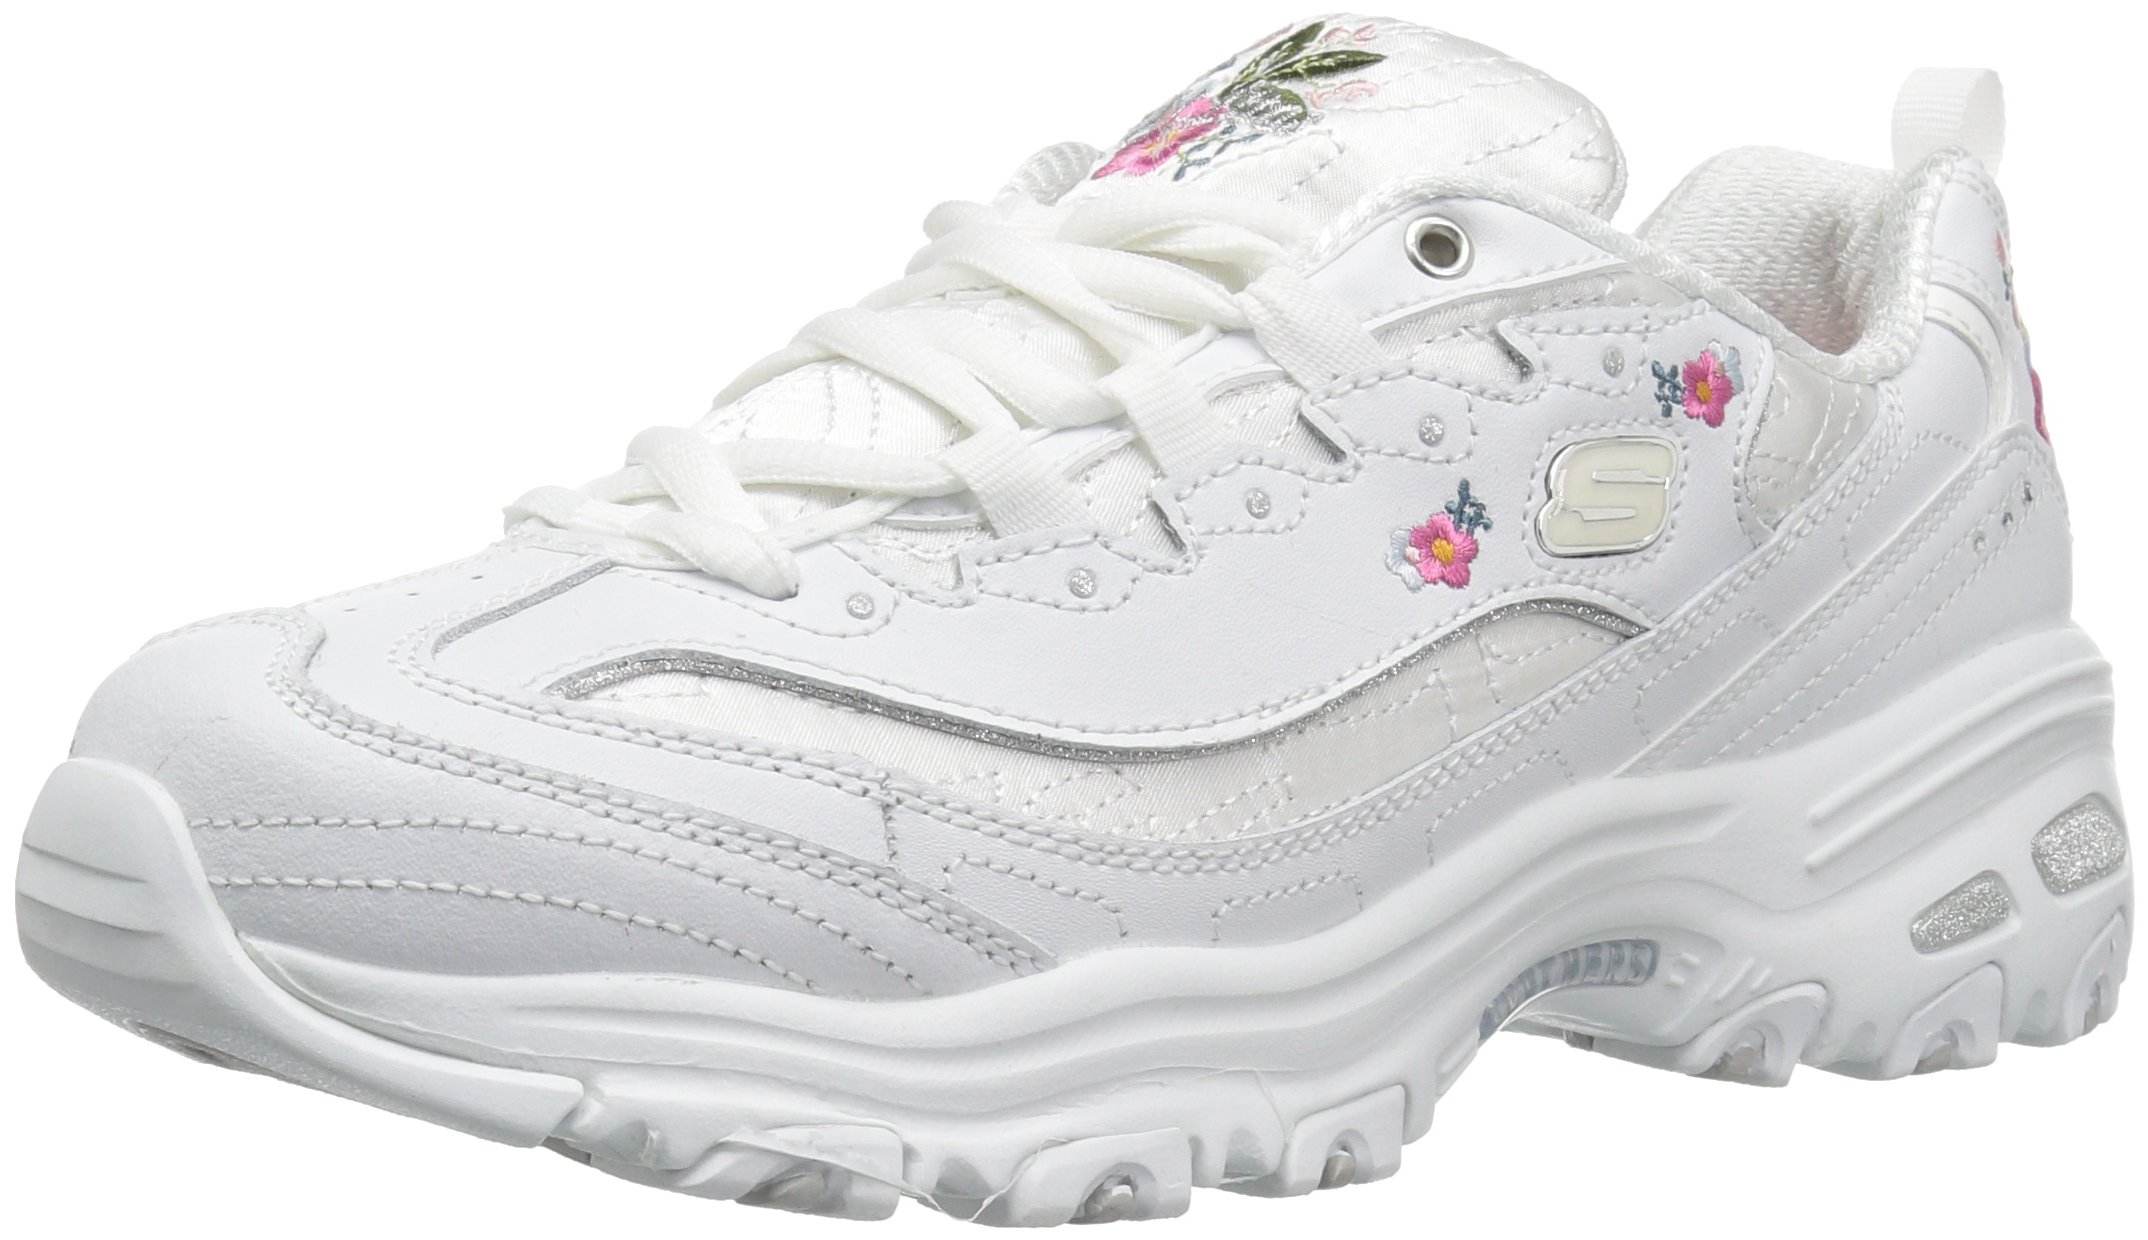 Skechers Women's Bright Blossoms Sneaker,White,7.5 M US